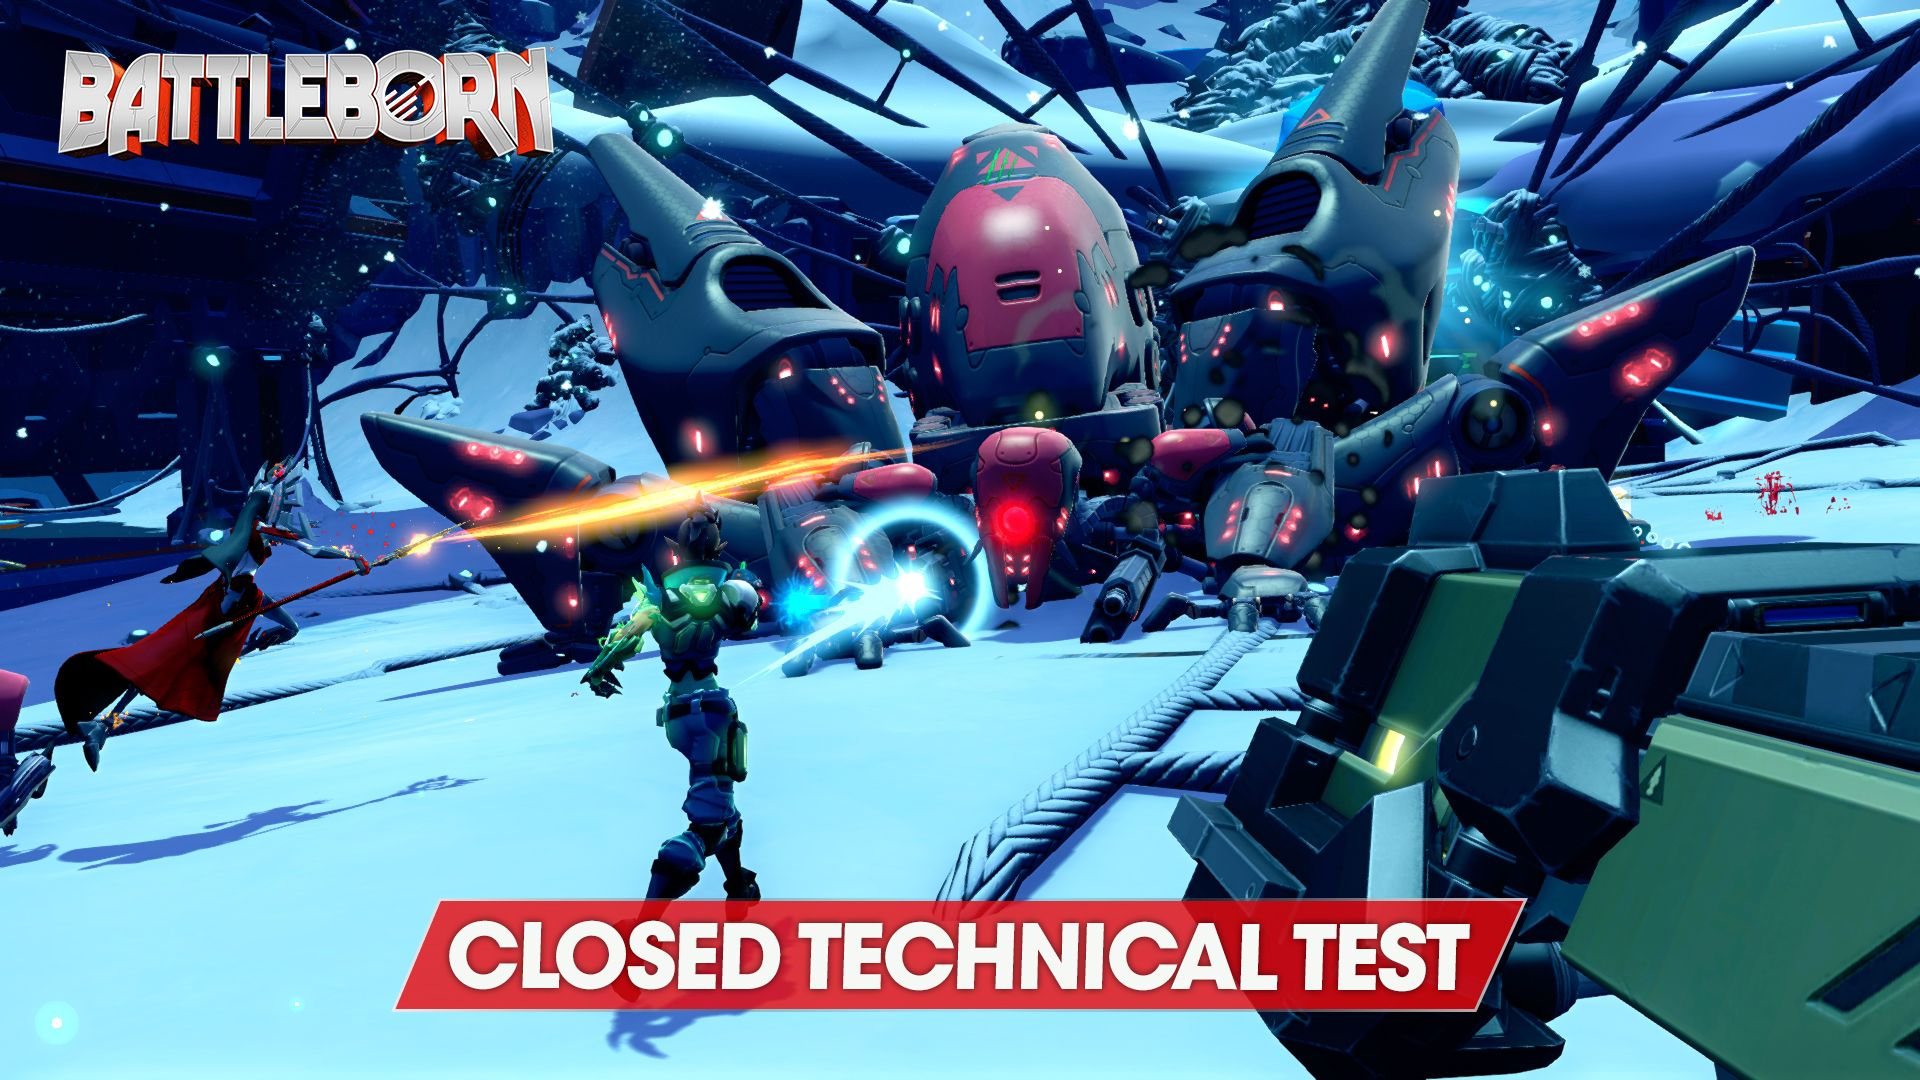 Battleborn servers down matchmaking failed Jul